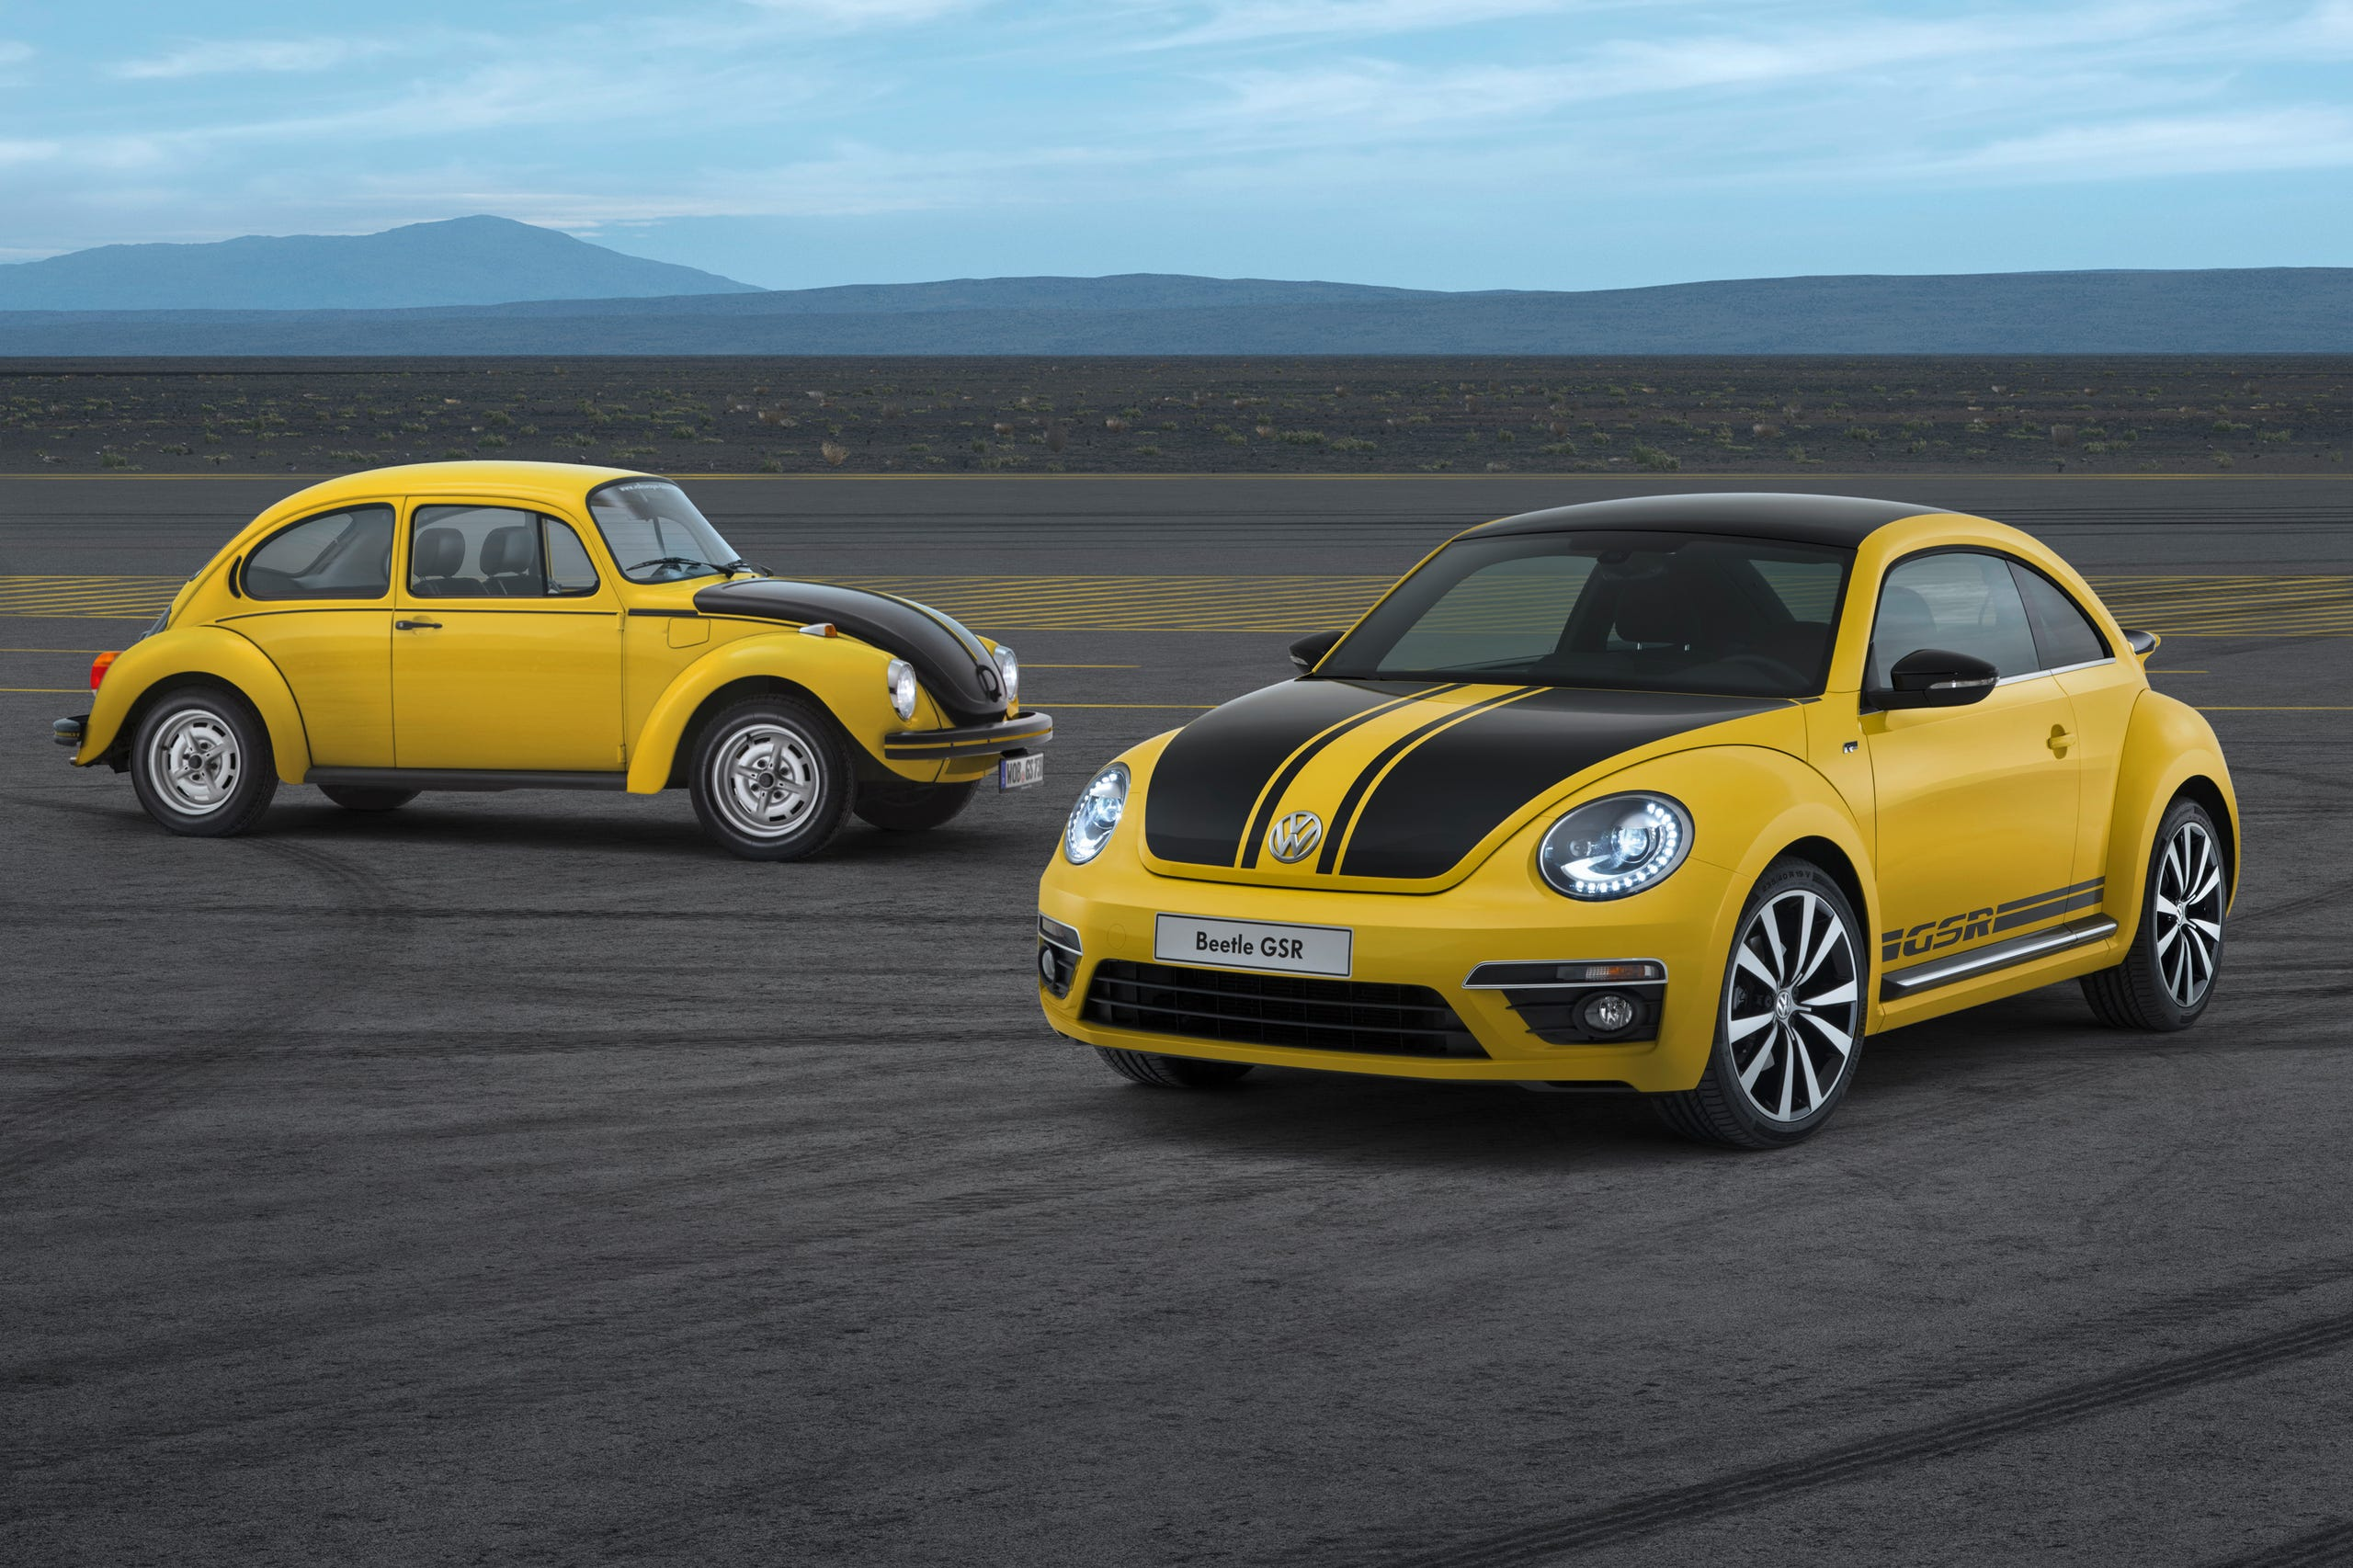 Hot 2014 VW Beetle GSR -- the new Yellow/Black Racer